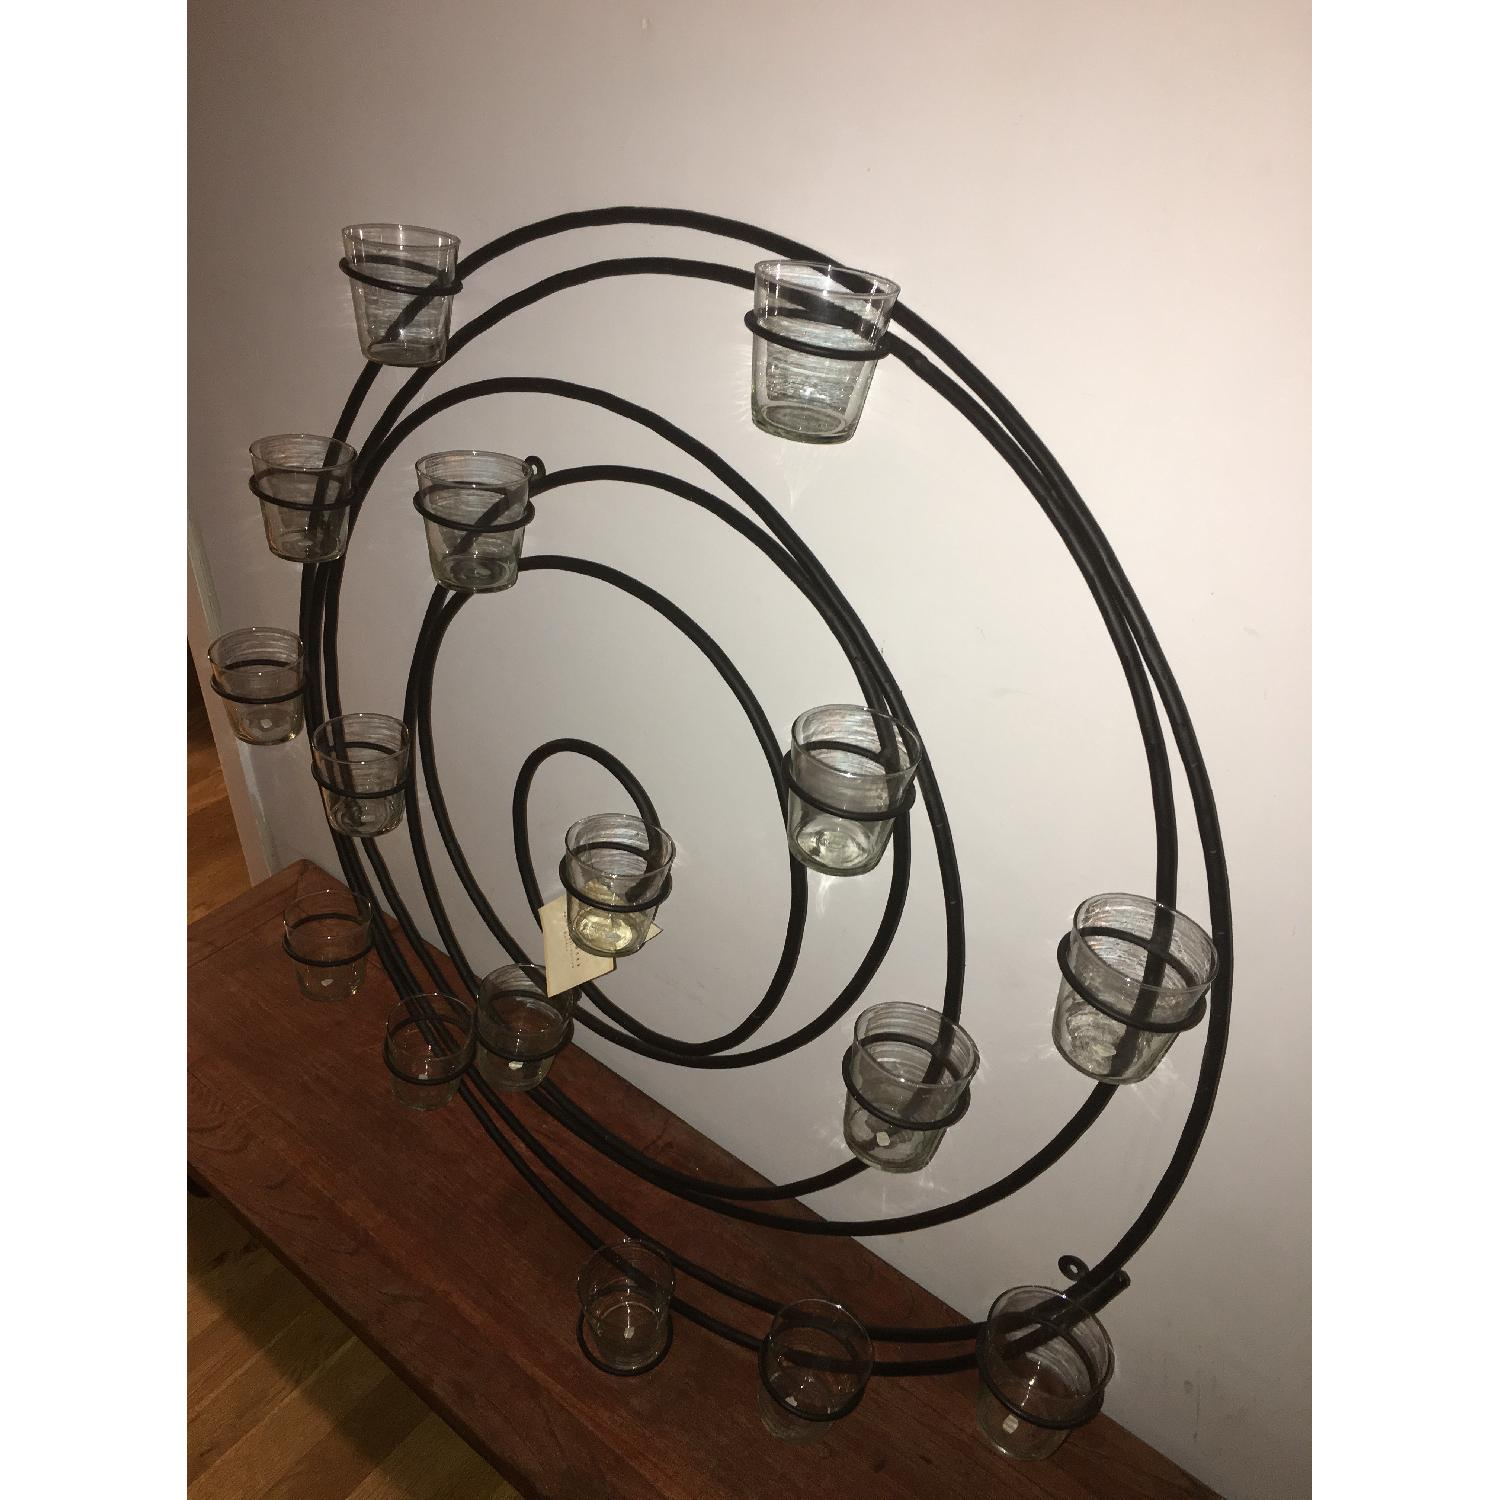 Pottery Barn Wrought Iron Spiral Wall Mount 16 Votive Candle Holder - image-2